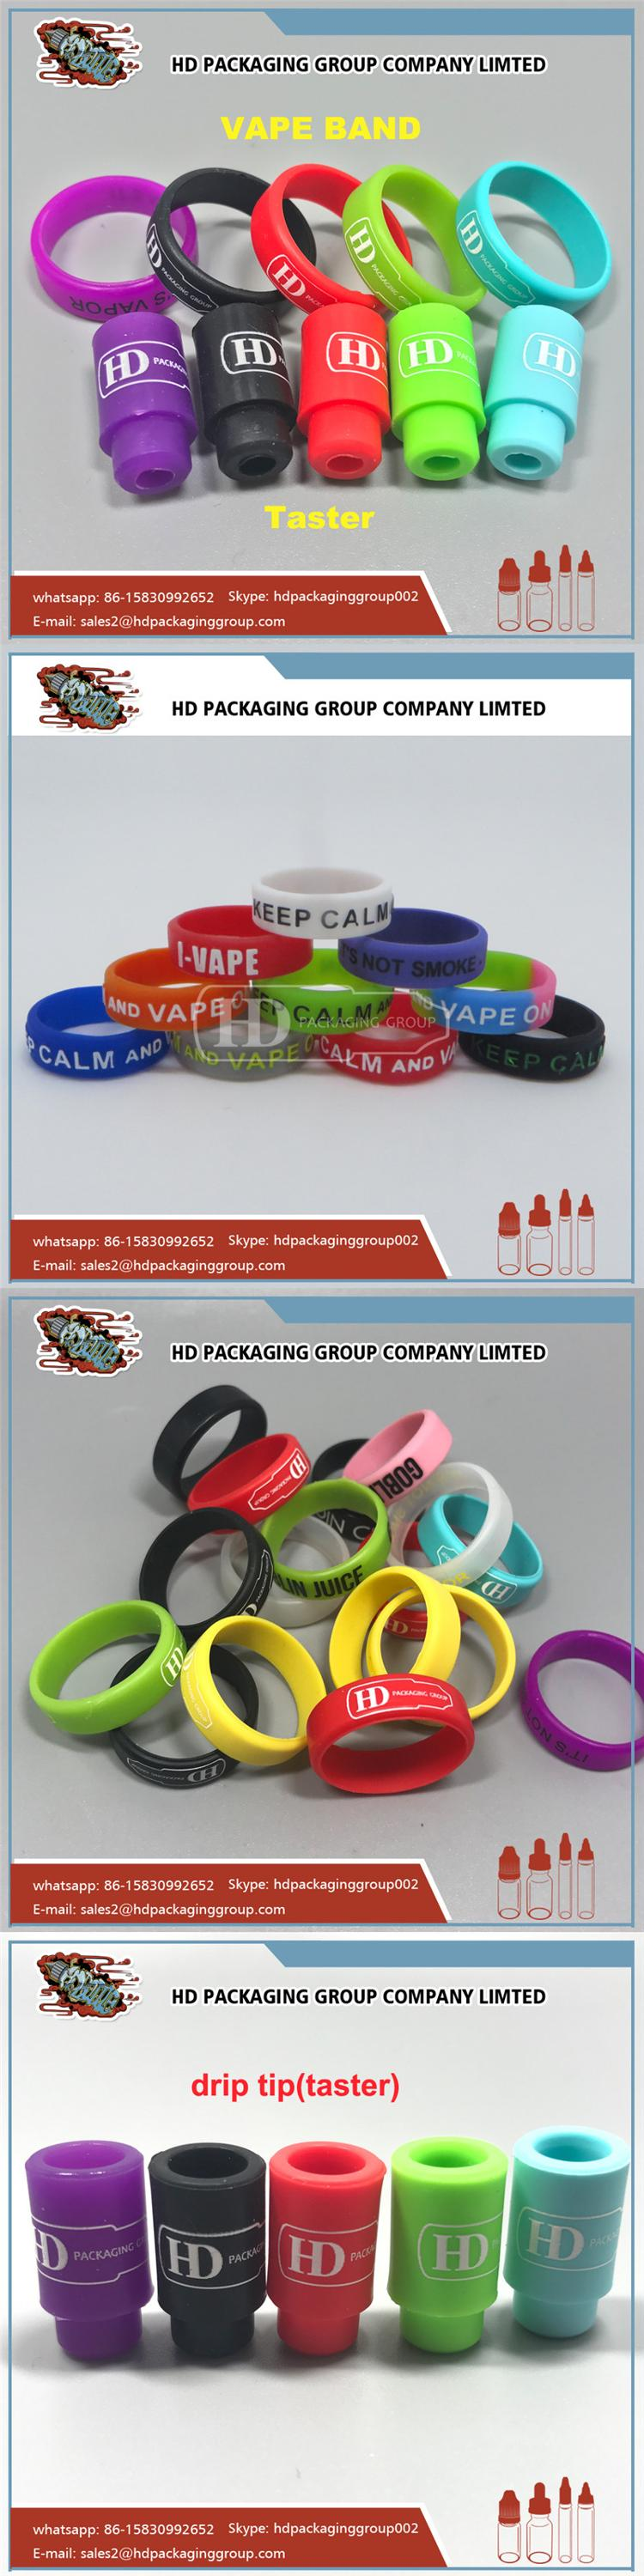 Hot selling original vape band for electronic cigarette